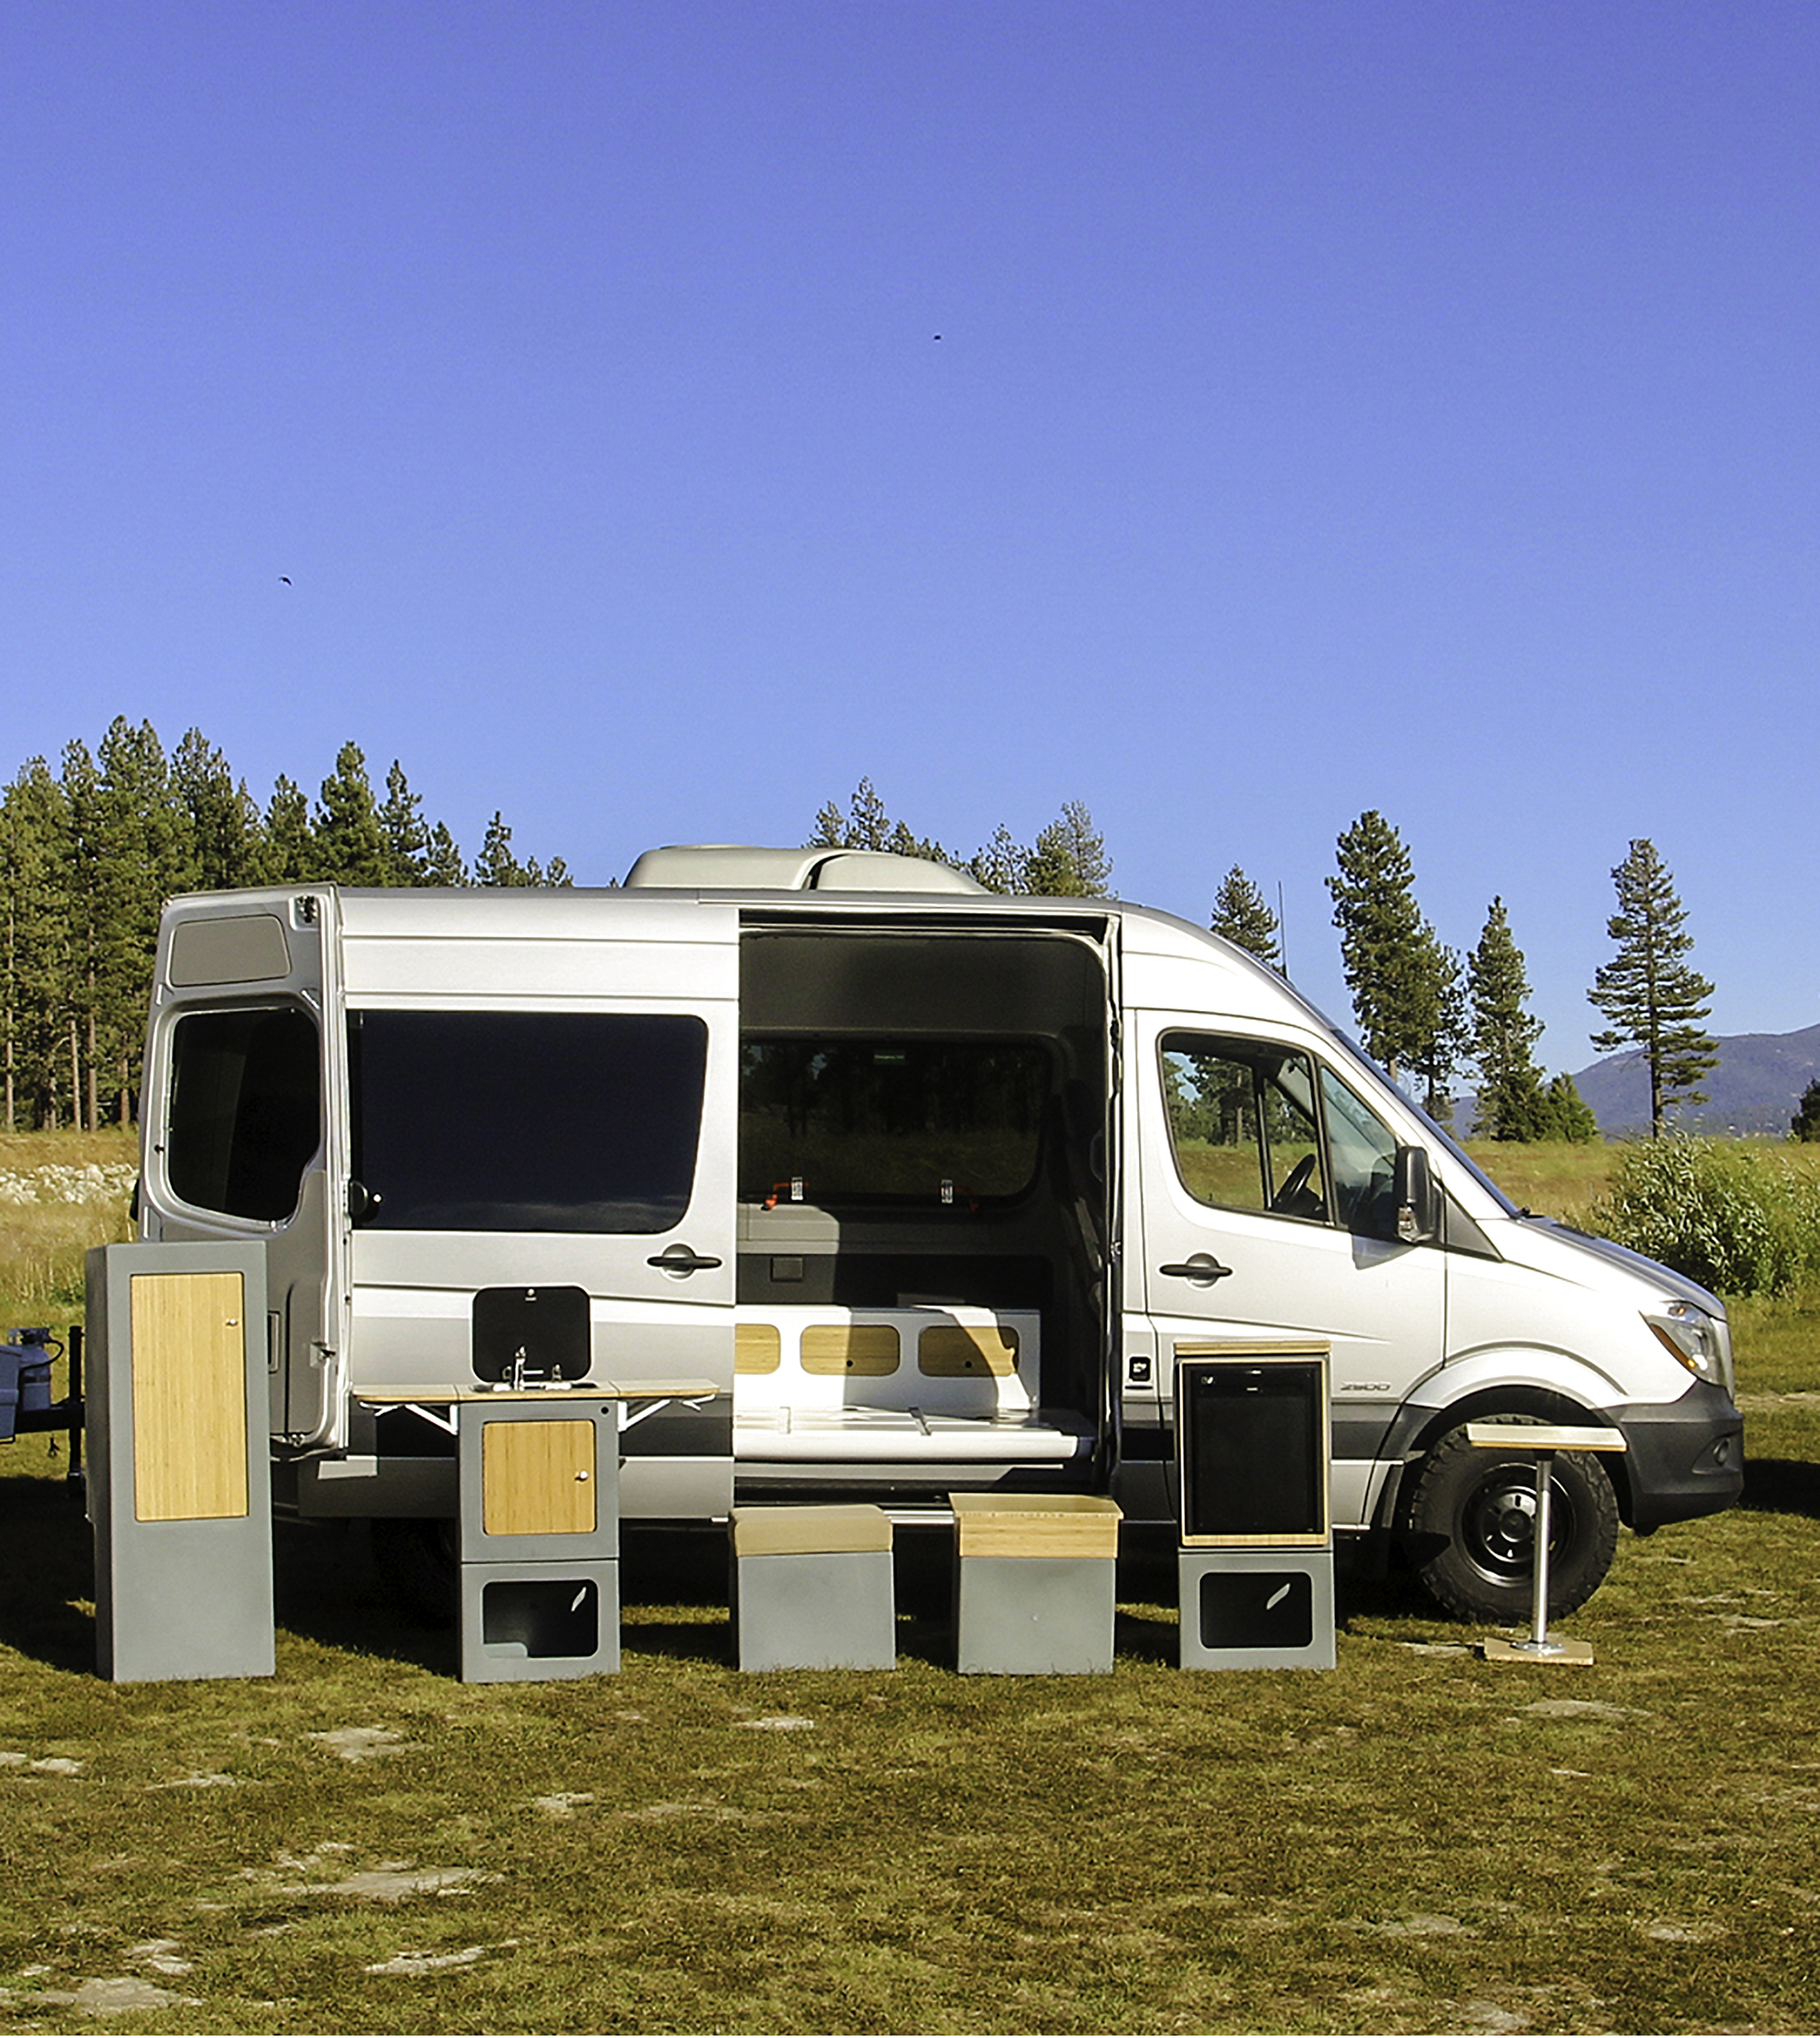 A silver Mercedes Sprinter van sits in a mountainous area with its side door open. Outside of the van are geometric cubes in various shapes that showcase the Happier Camper conversion kit.